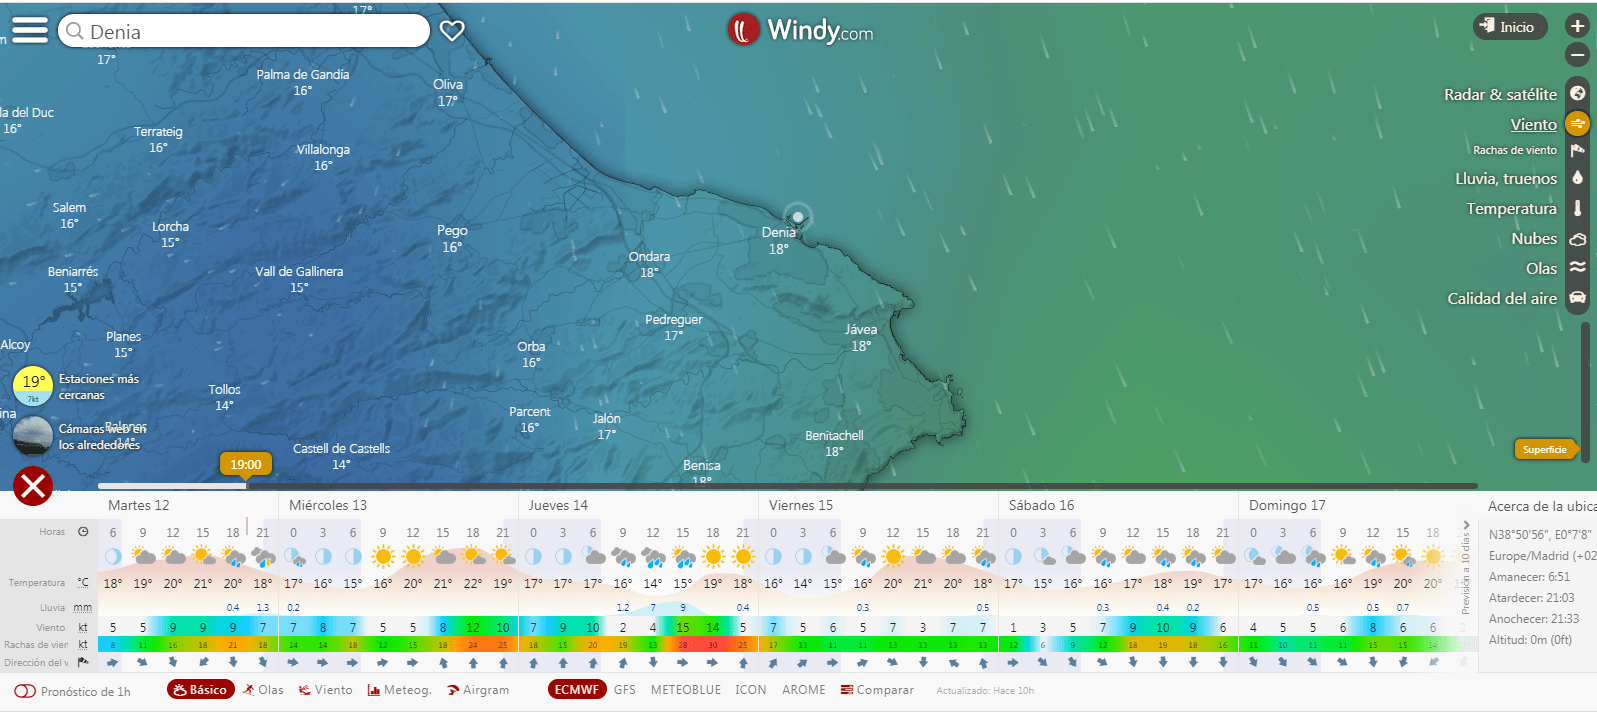 Wind forecast in meteorological web